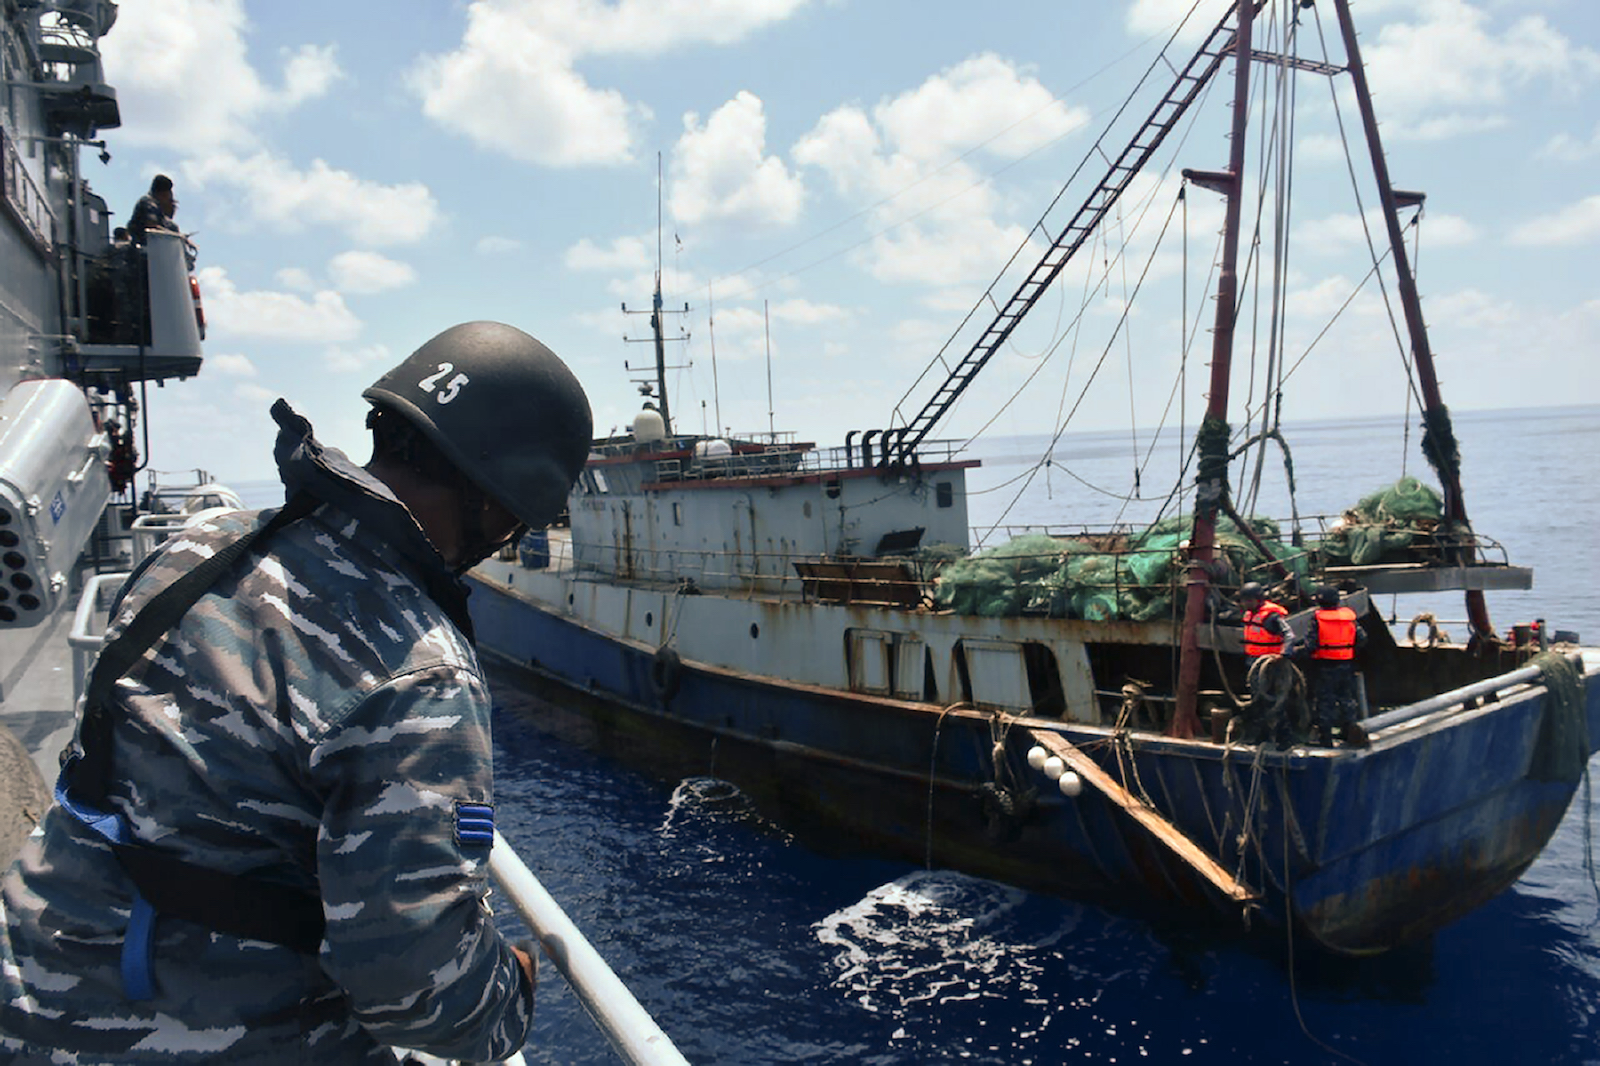 China, Indonesia square-off in South China Sea